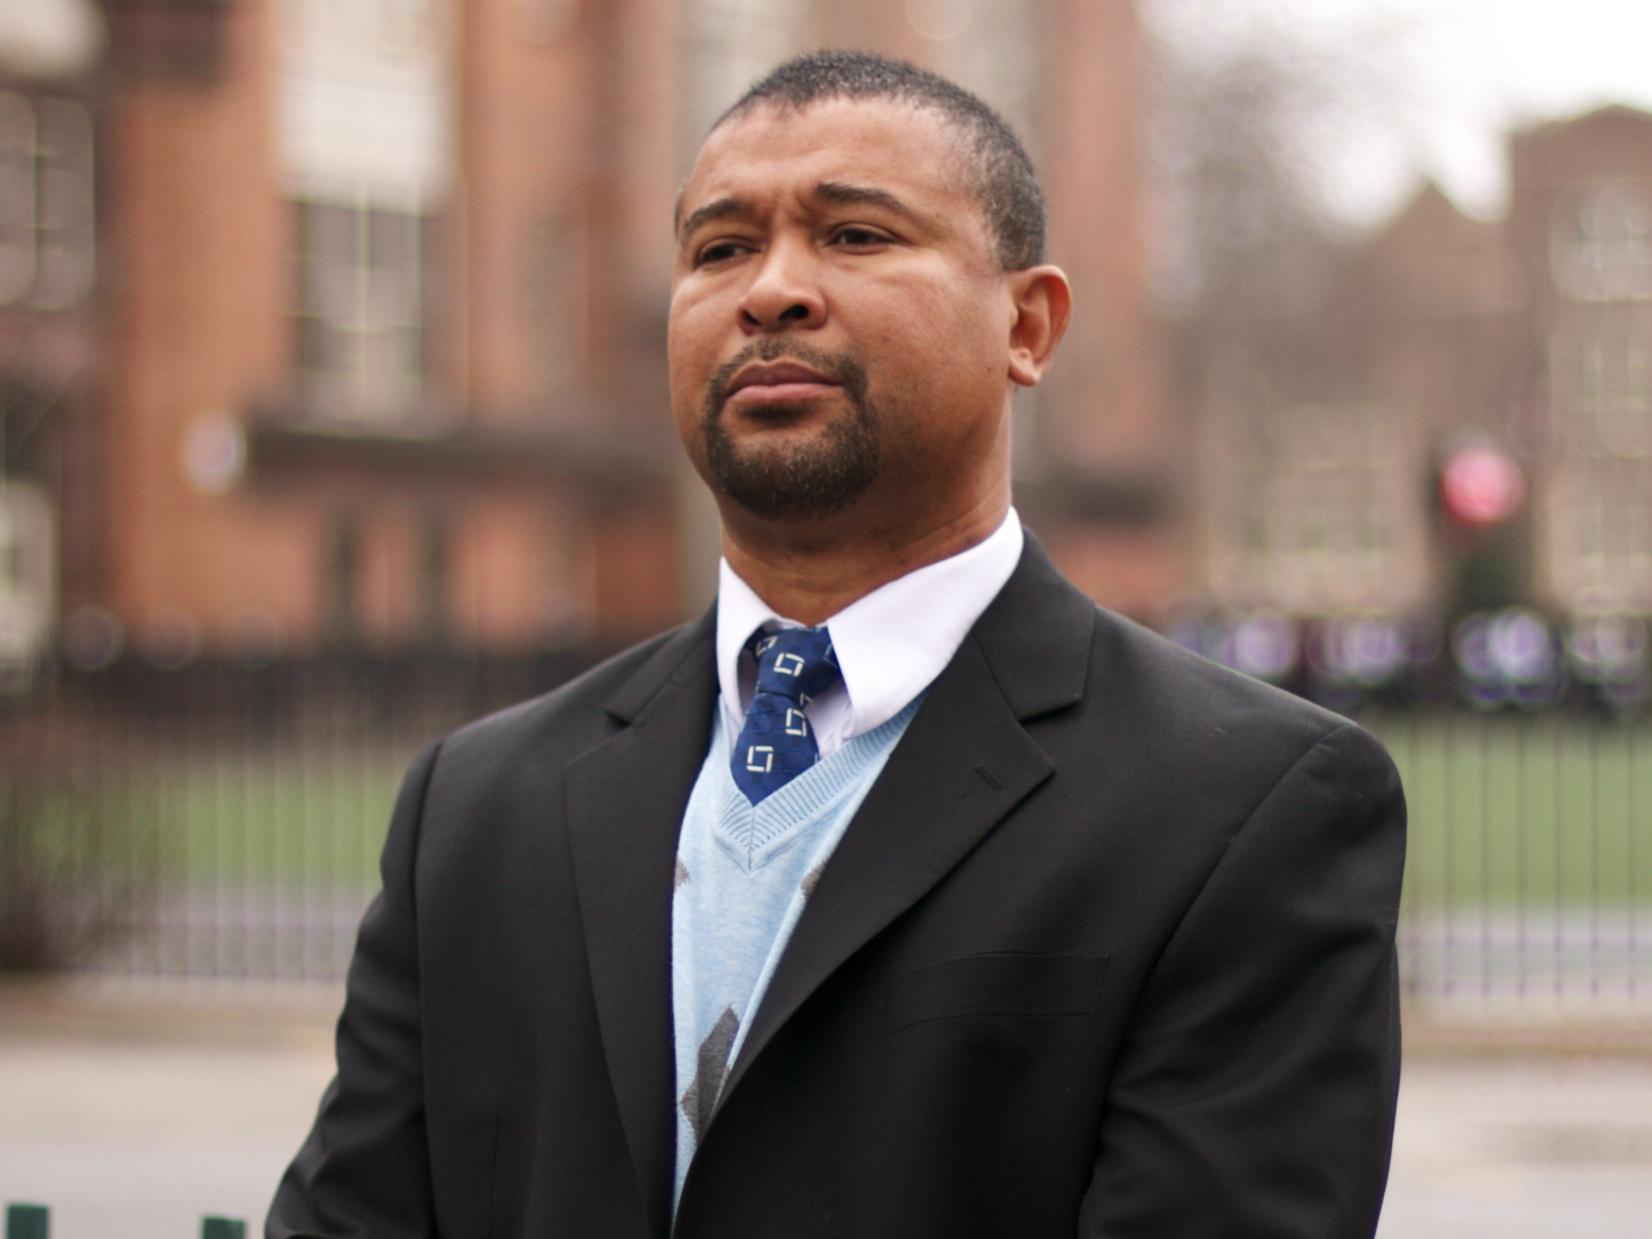 'Ex-Offender' McKinley Wins IL GOP Primary to Replace Jesse Jackson, Jr.